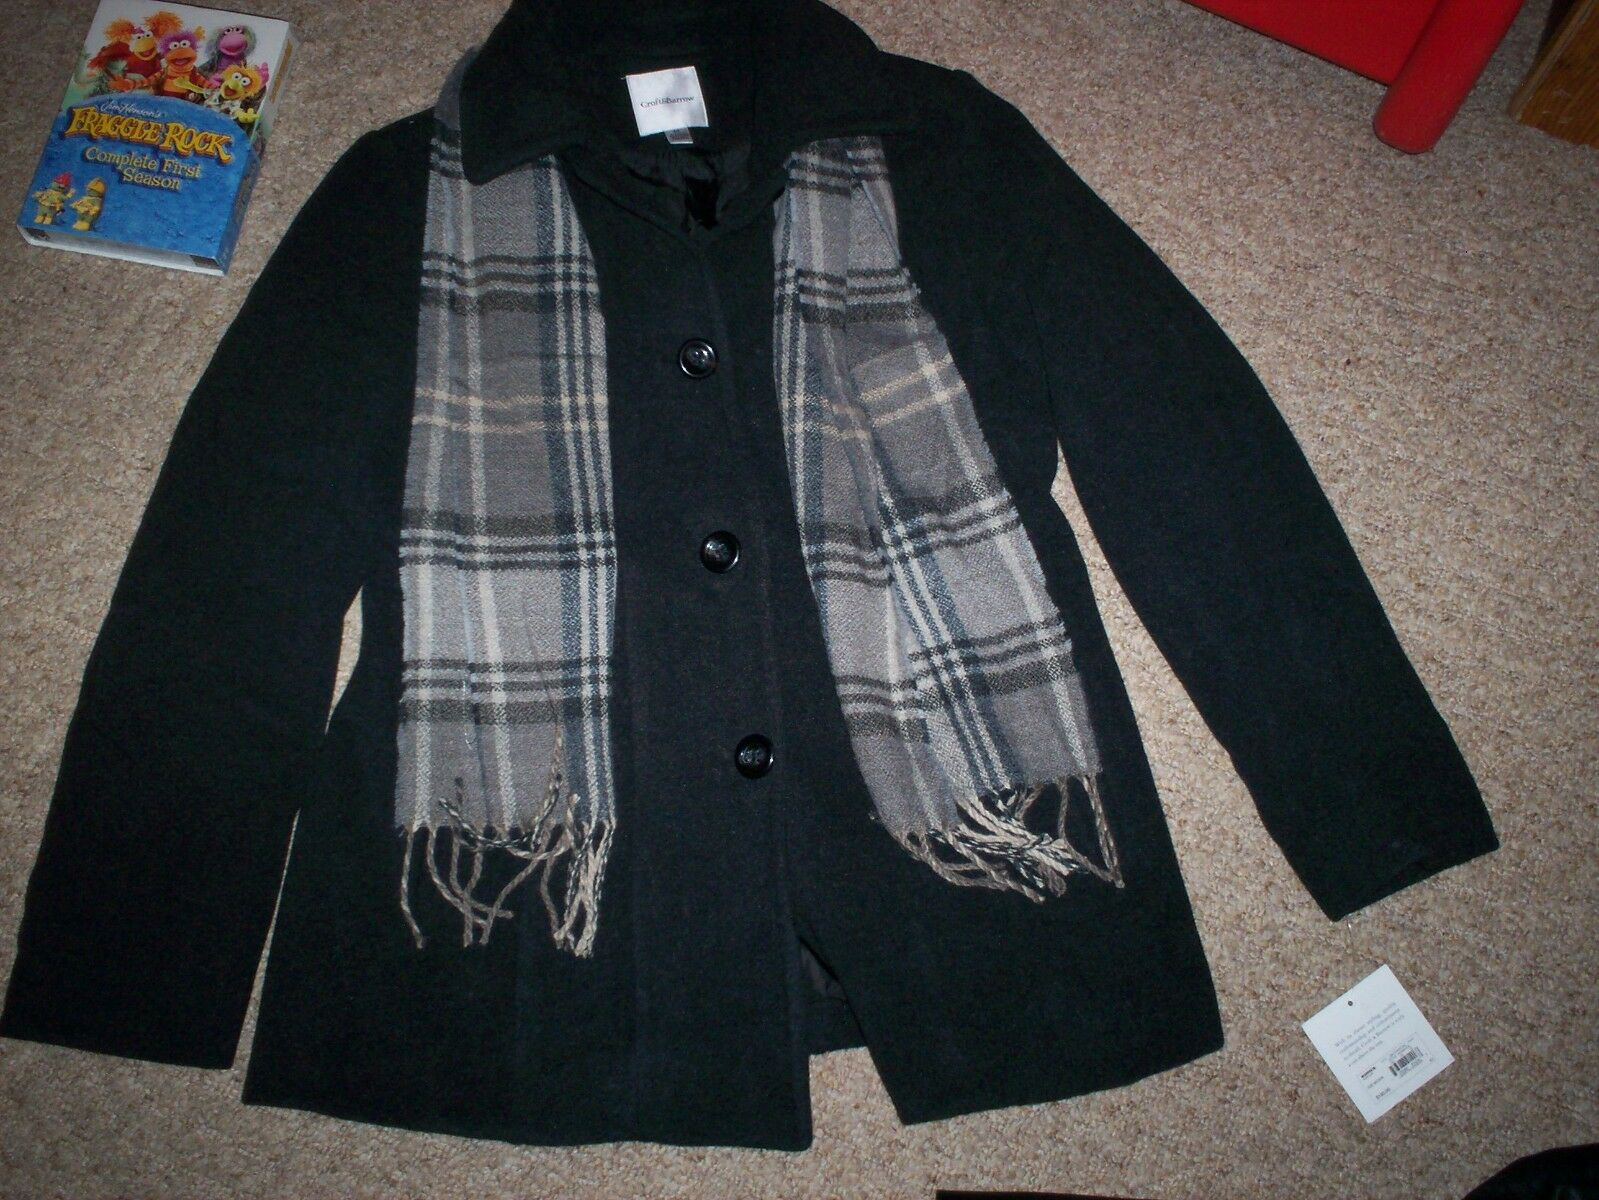 NEW NWT Croft & Barrow Charcoal Coat with Scarf Size MEDIUM LINED  180 MSRP